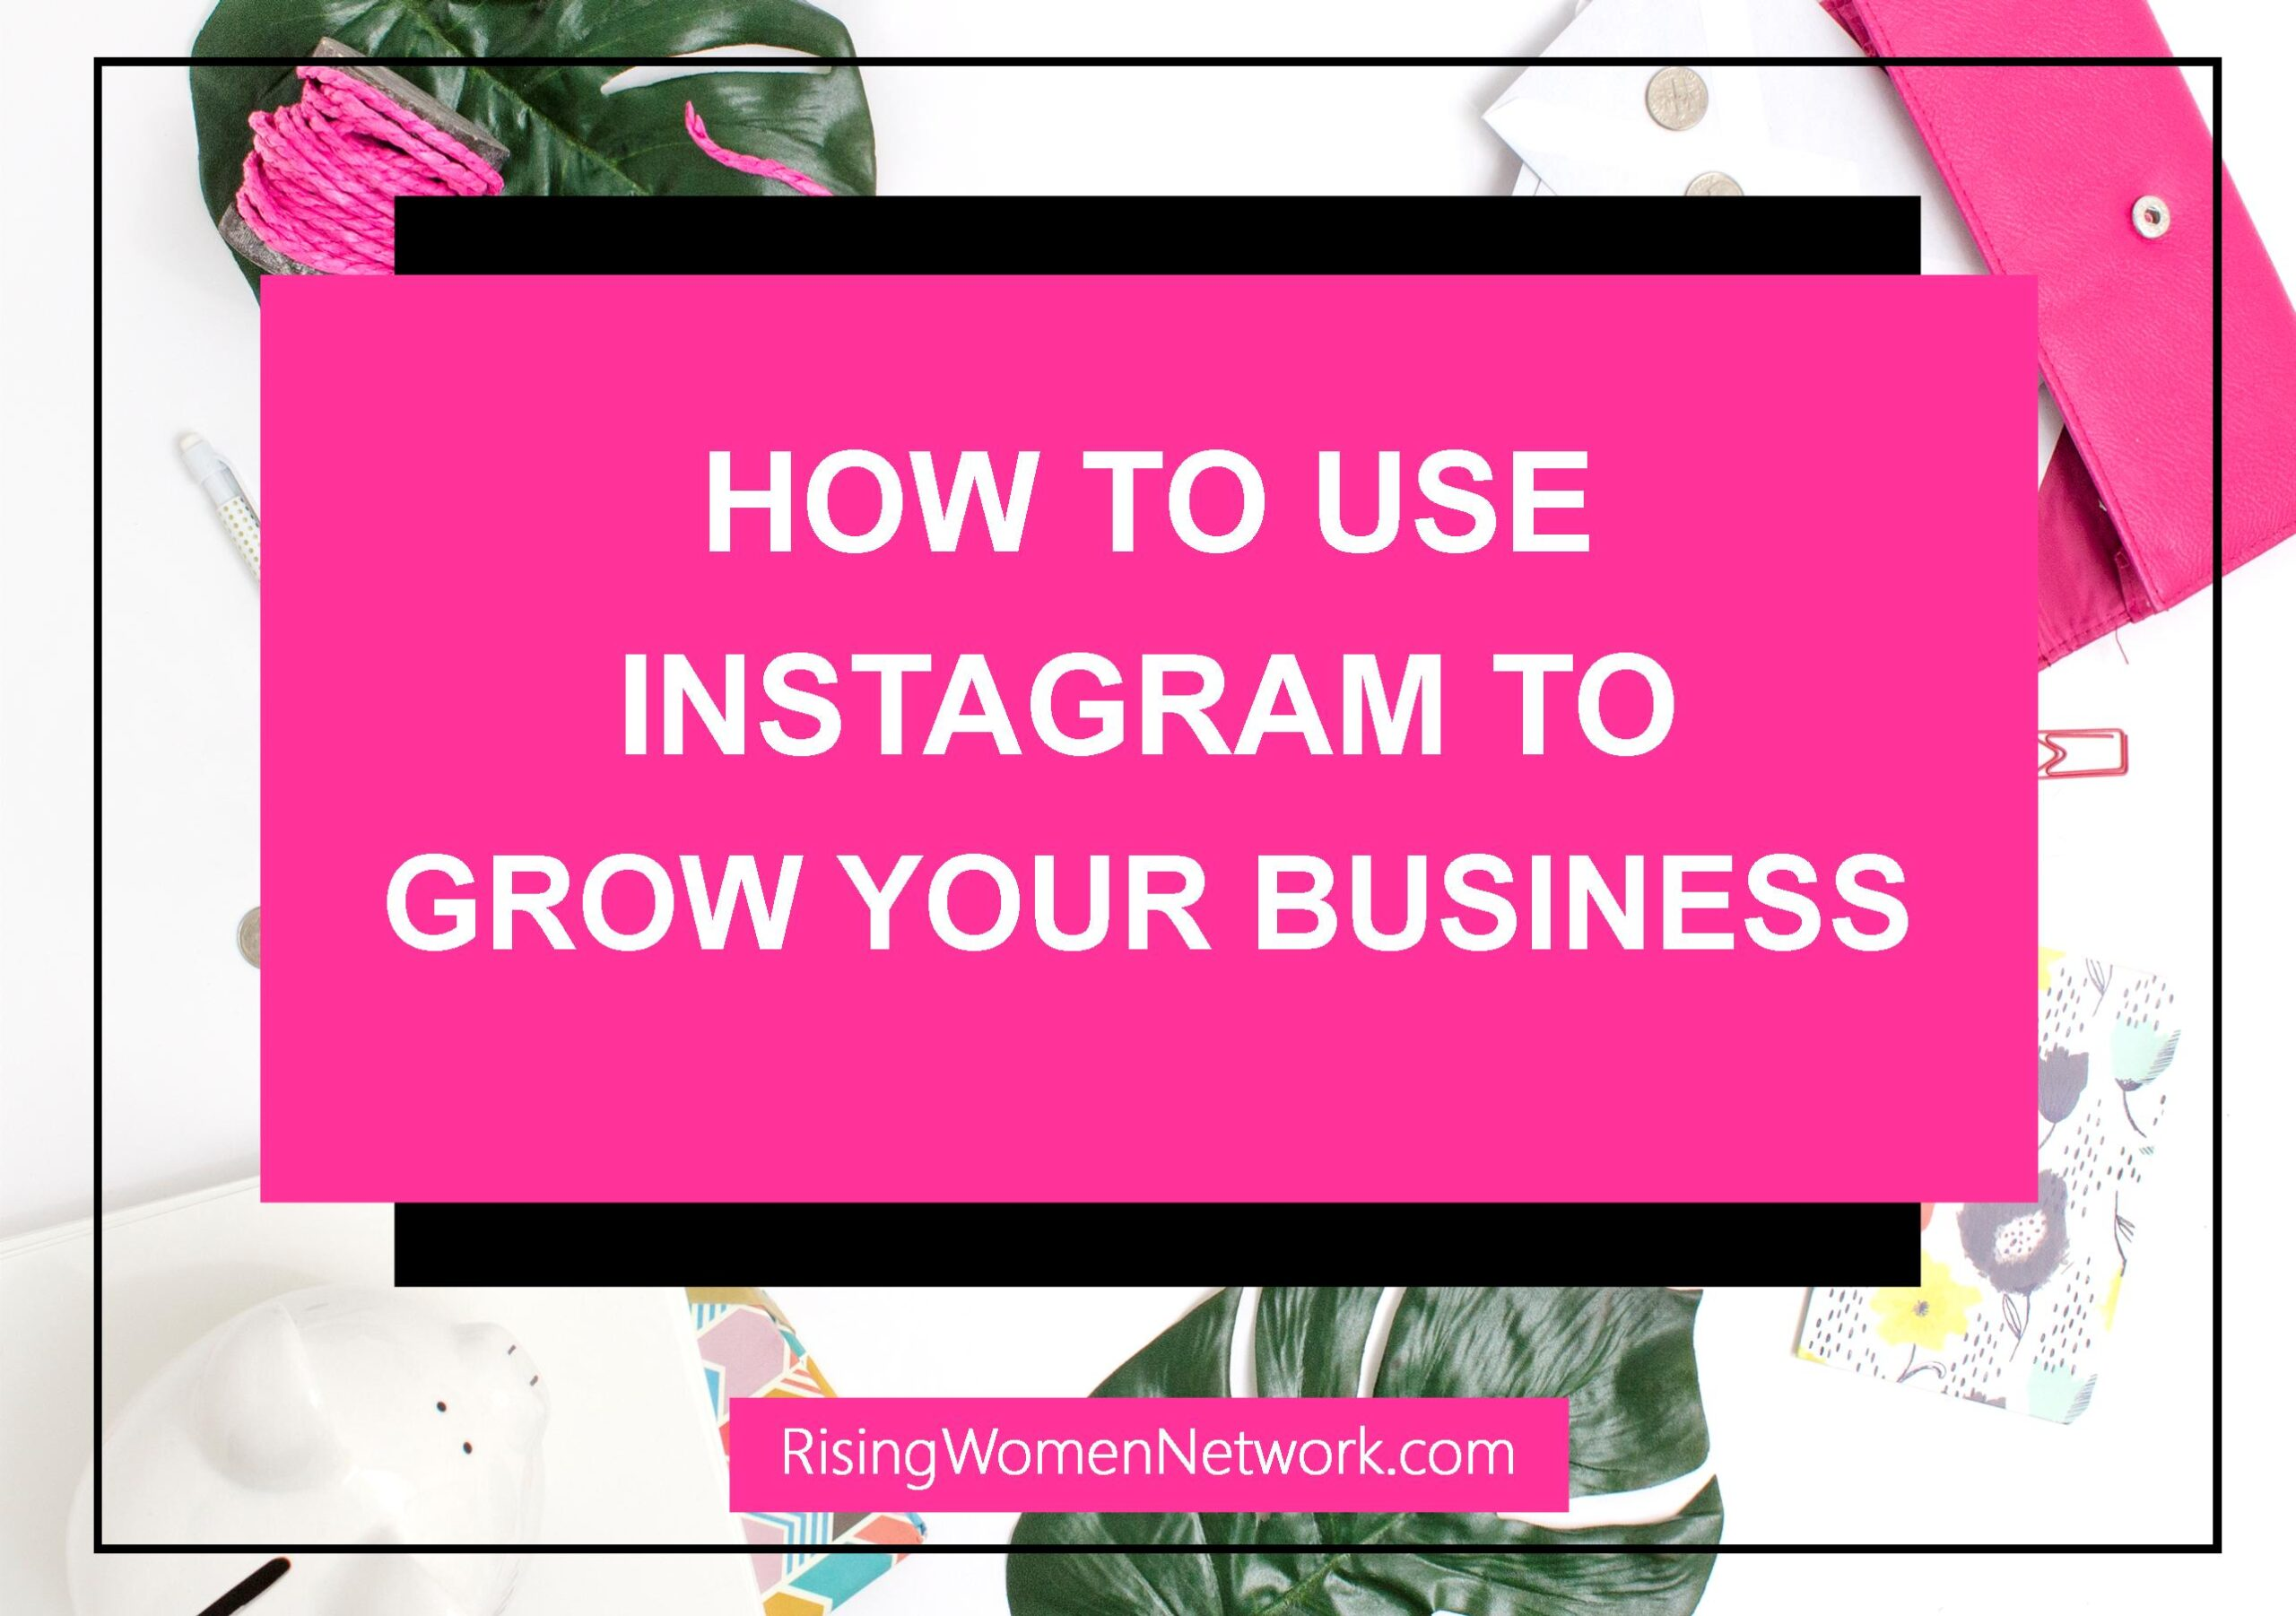 Whether you sell physical products, digital products, or services – if you are a creative entrepreneur, you need to sign up and use Instagram.